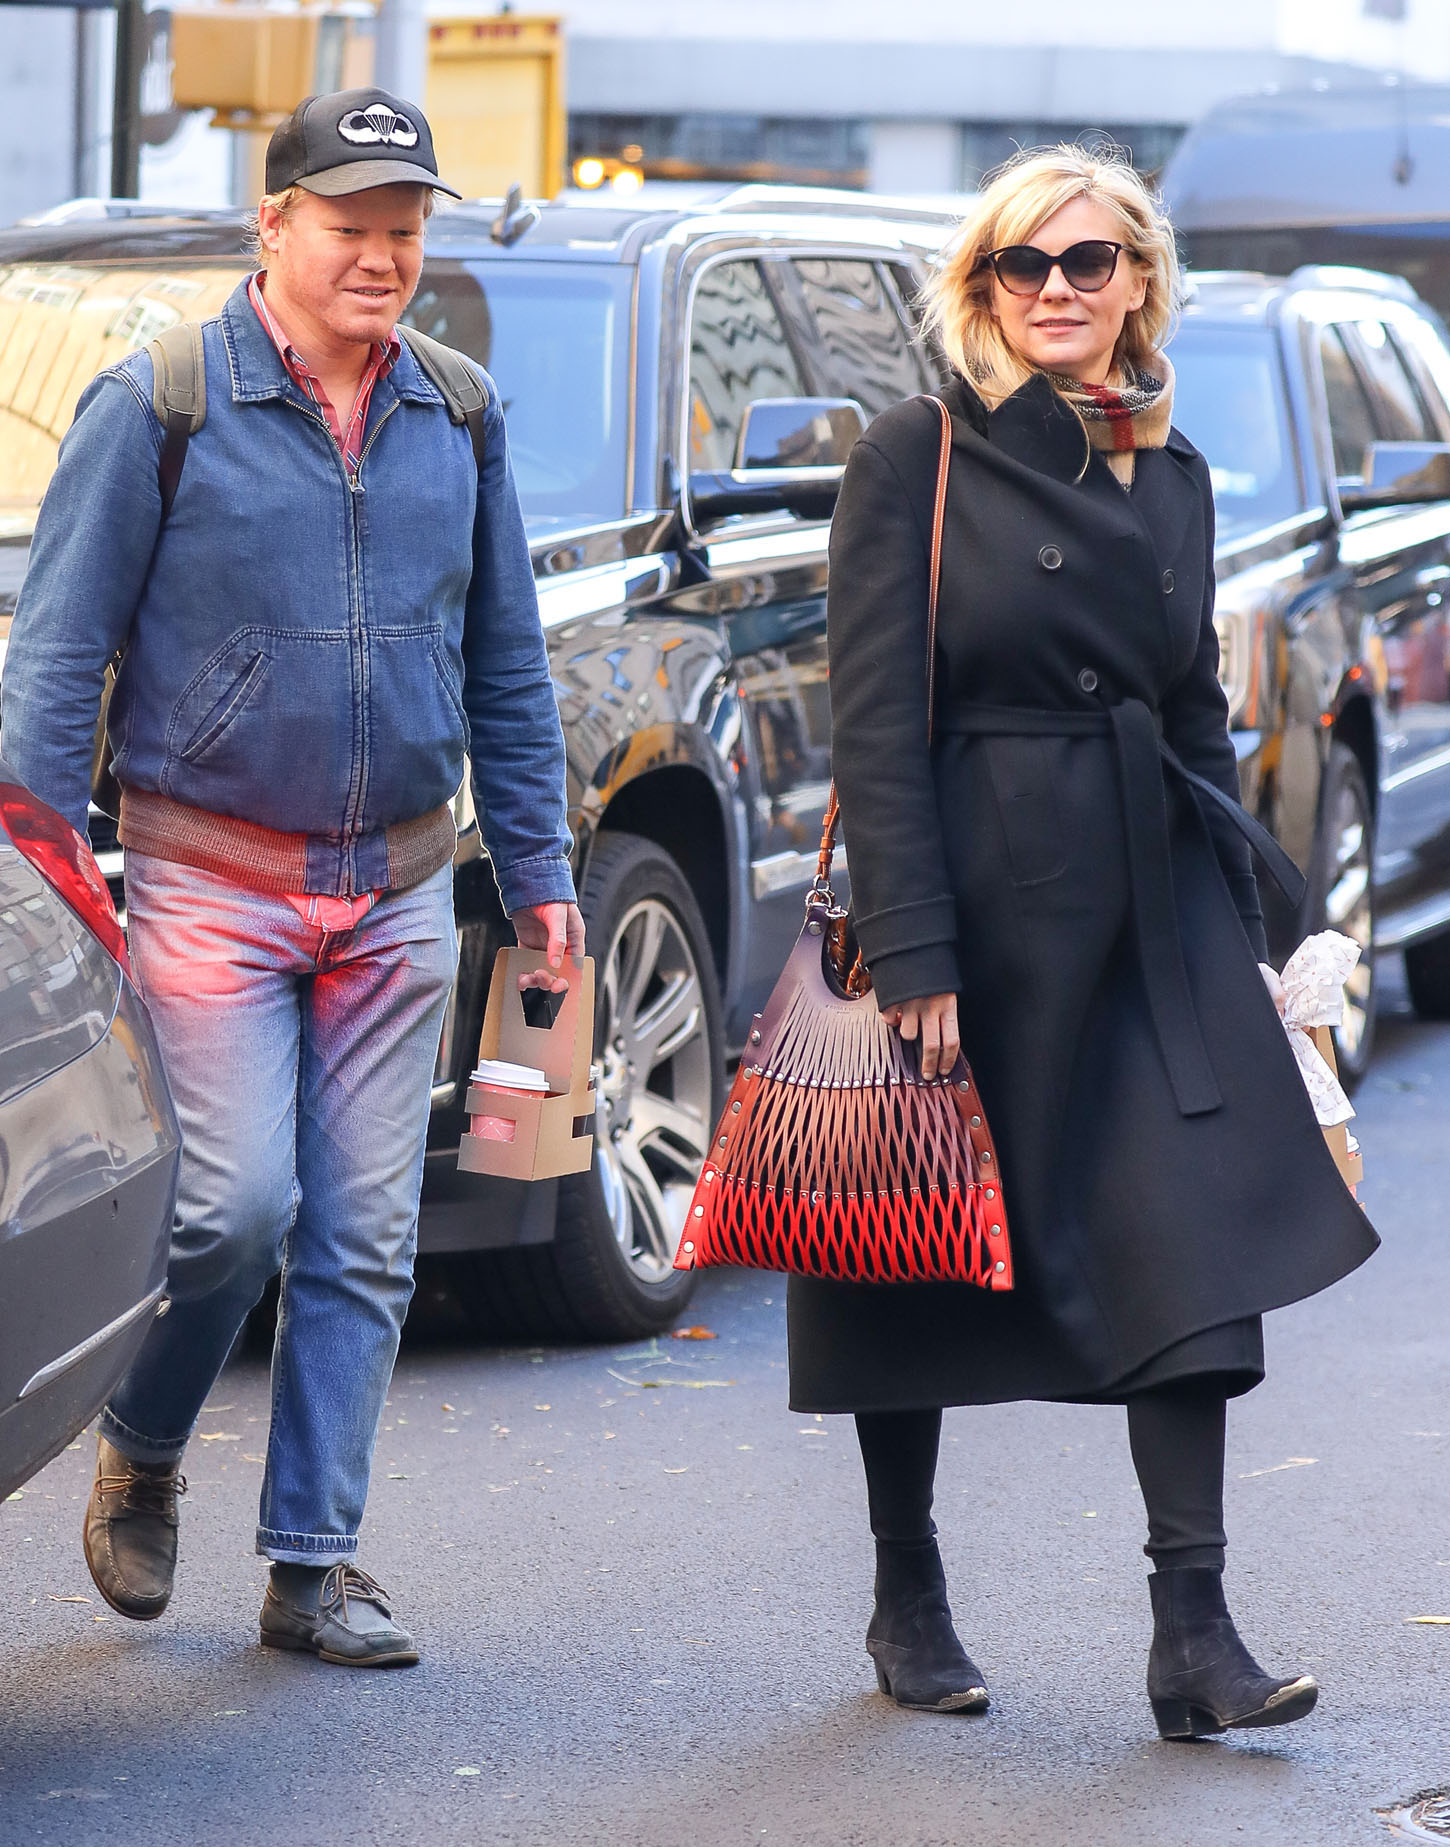 Kirsten Dunst and fiance Jesse Plemons were spotted with  hot drinks from Sant Ambroeus in the Upper East Side, New York City, New York, USA. <P> Pictured: Kirsten Dunst and Jesse Plemons <B>Ref: SPL1625761  171117  </B><BR/> Picture by: Felipe Ramales / Splash News<BR/> </P><P> <B>Splash News and Pictures</B><BR/> Los Angeles:310-821-2666<BR/> New York:212-619-2666<BR/> London:870-934-2666<BR/> <span id=